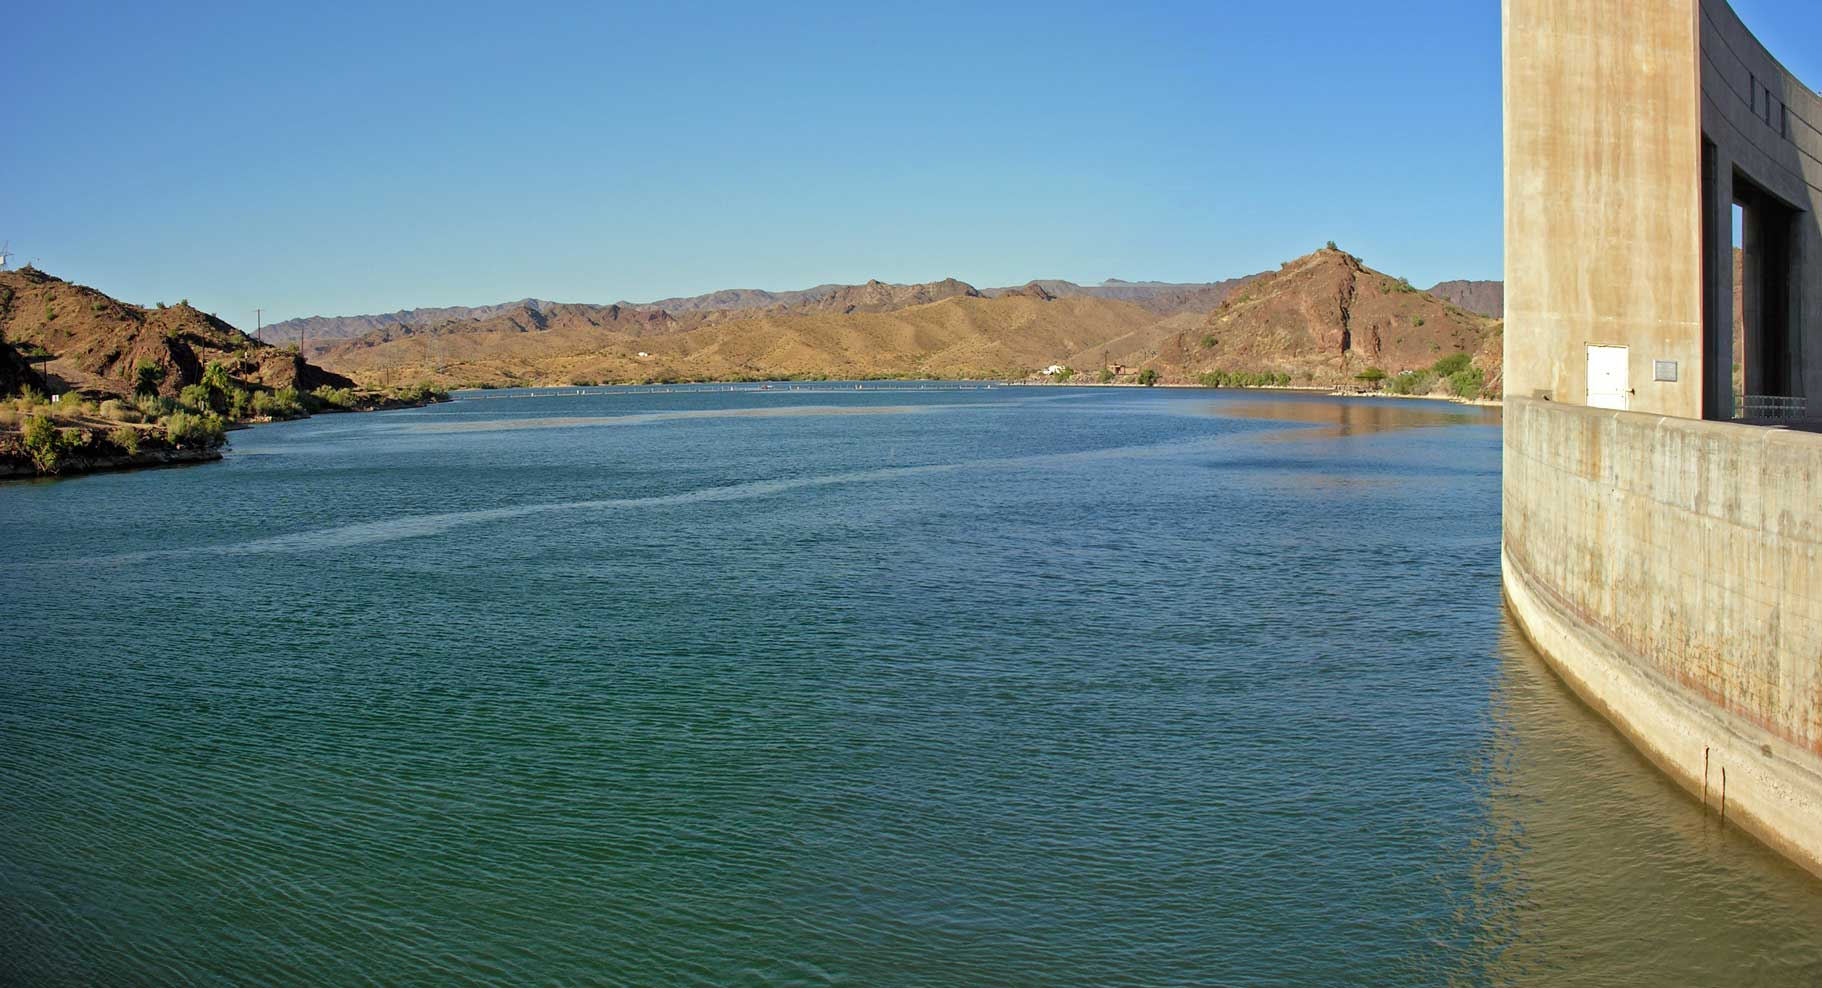 Lake Havasu on the Colorado River is the secondary source of drinking water for Phoenix, Arizona, supplying about 40% of Phoenix's water supply. 50% comes from the watersheds of the Verde and Salt Rivers, according to the official website of the City of Phoenix Water Services Department. Los Angeles also obtains a significant percentage of its water supply from Lake Havasu. Image credit: Wikimedia.org user Kjkolb